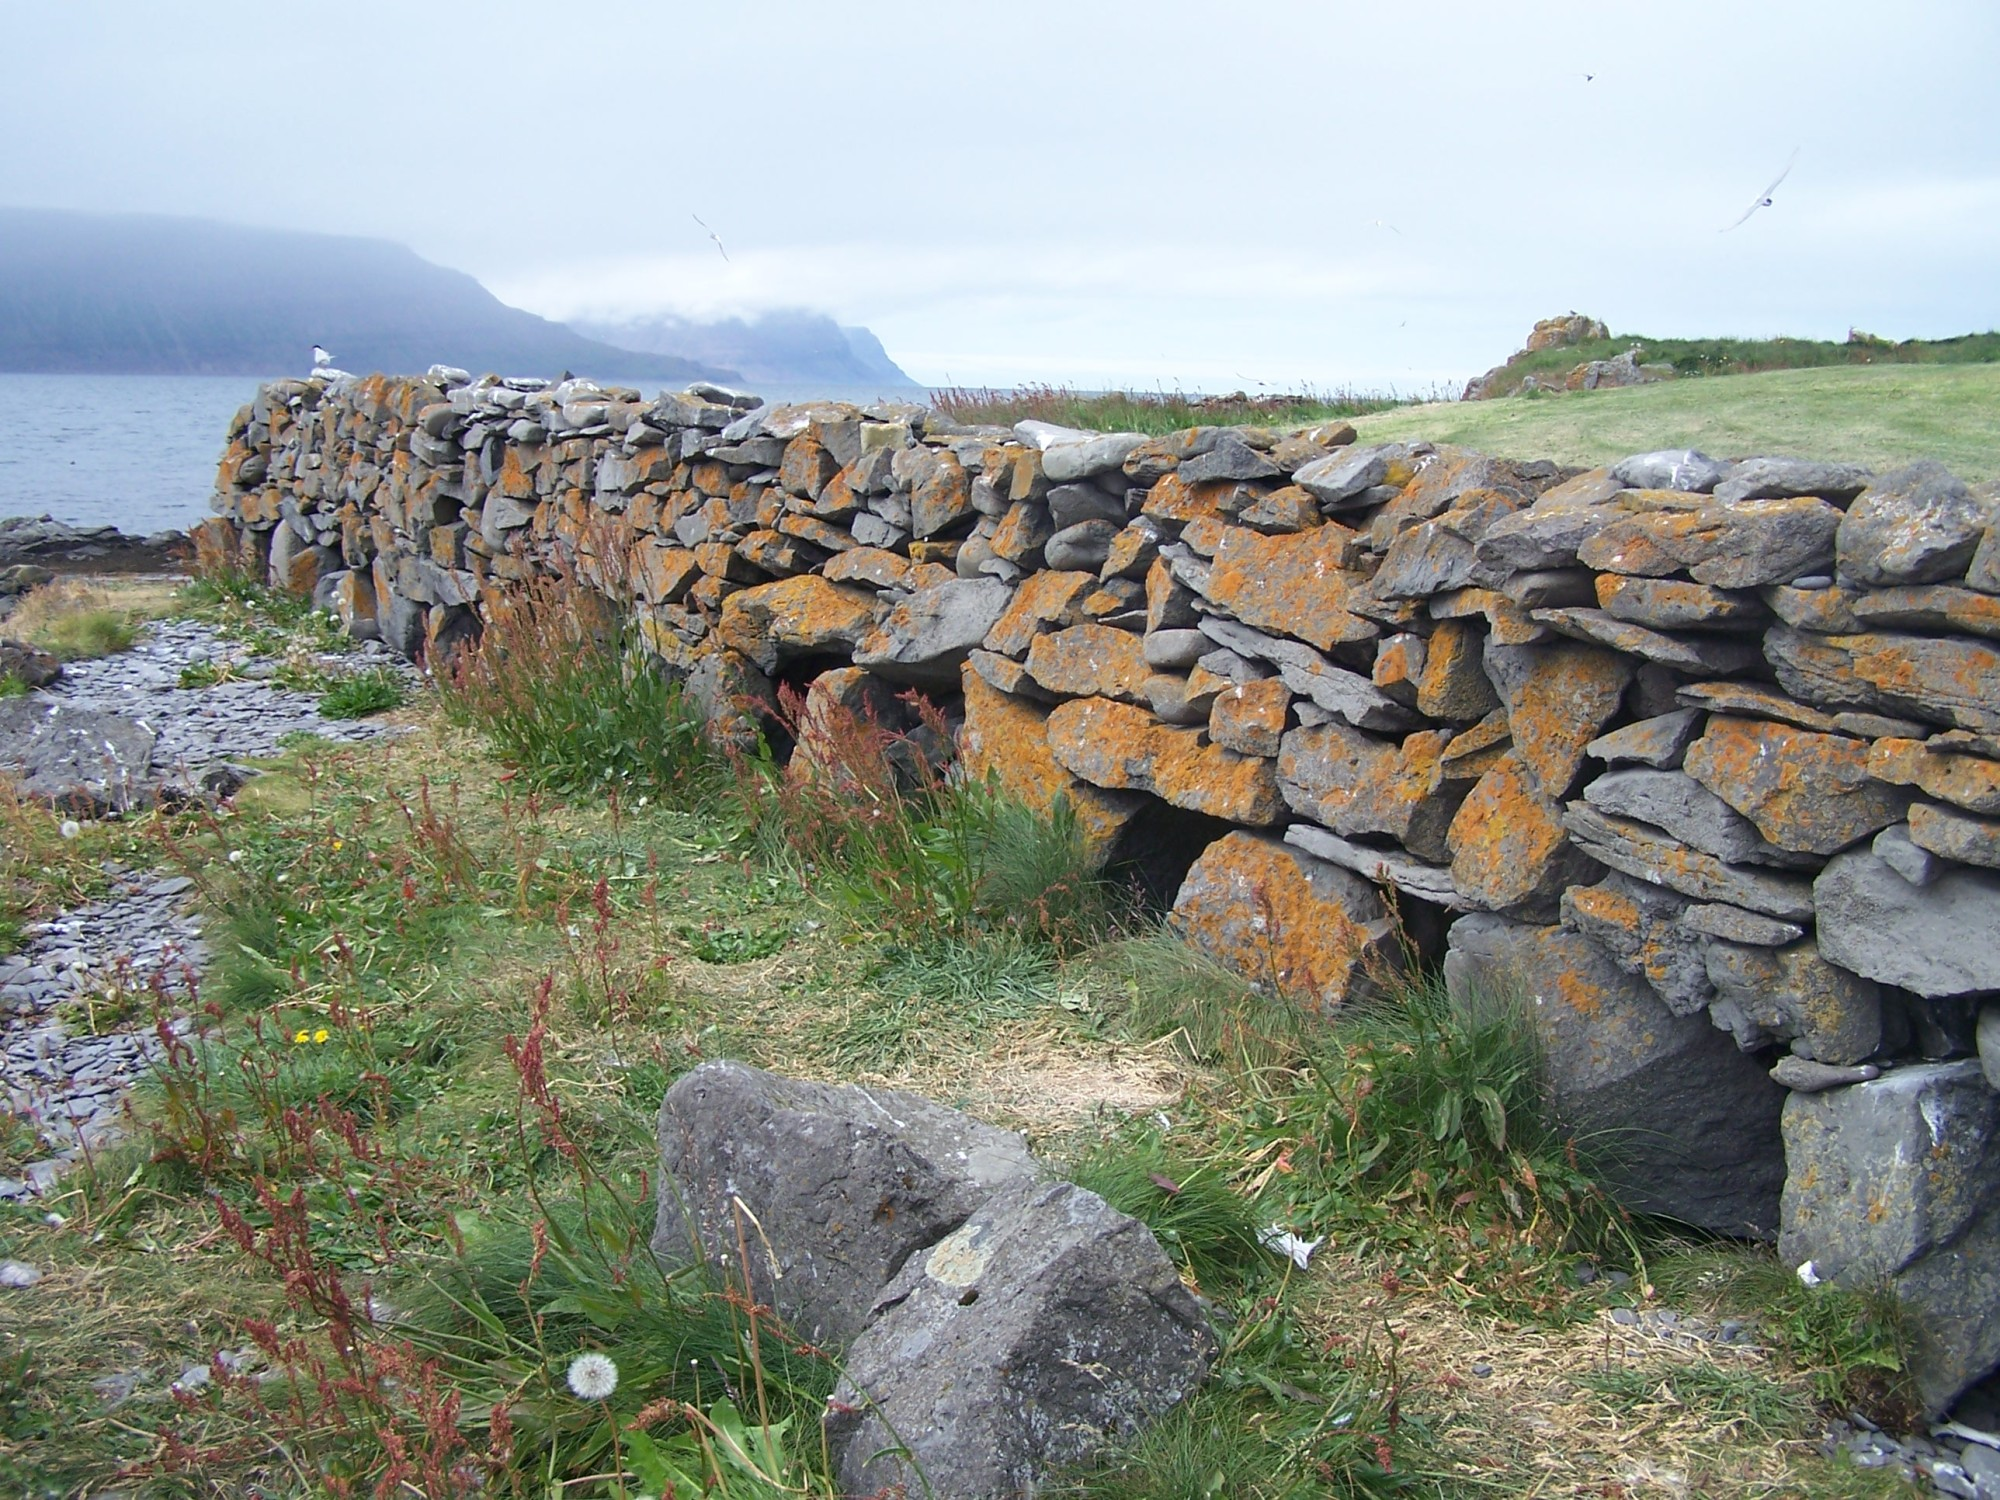 A stone wall provides shelters for the Common Eider. This was constructed over two hundred years ago.